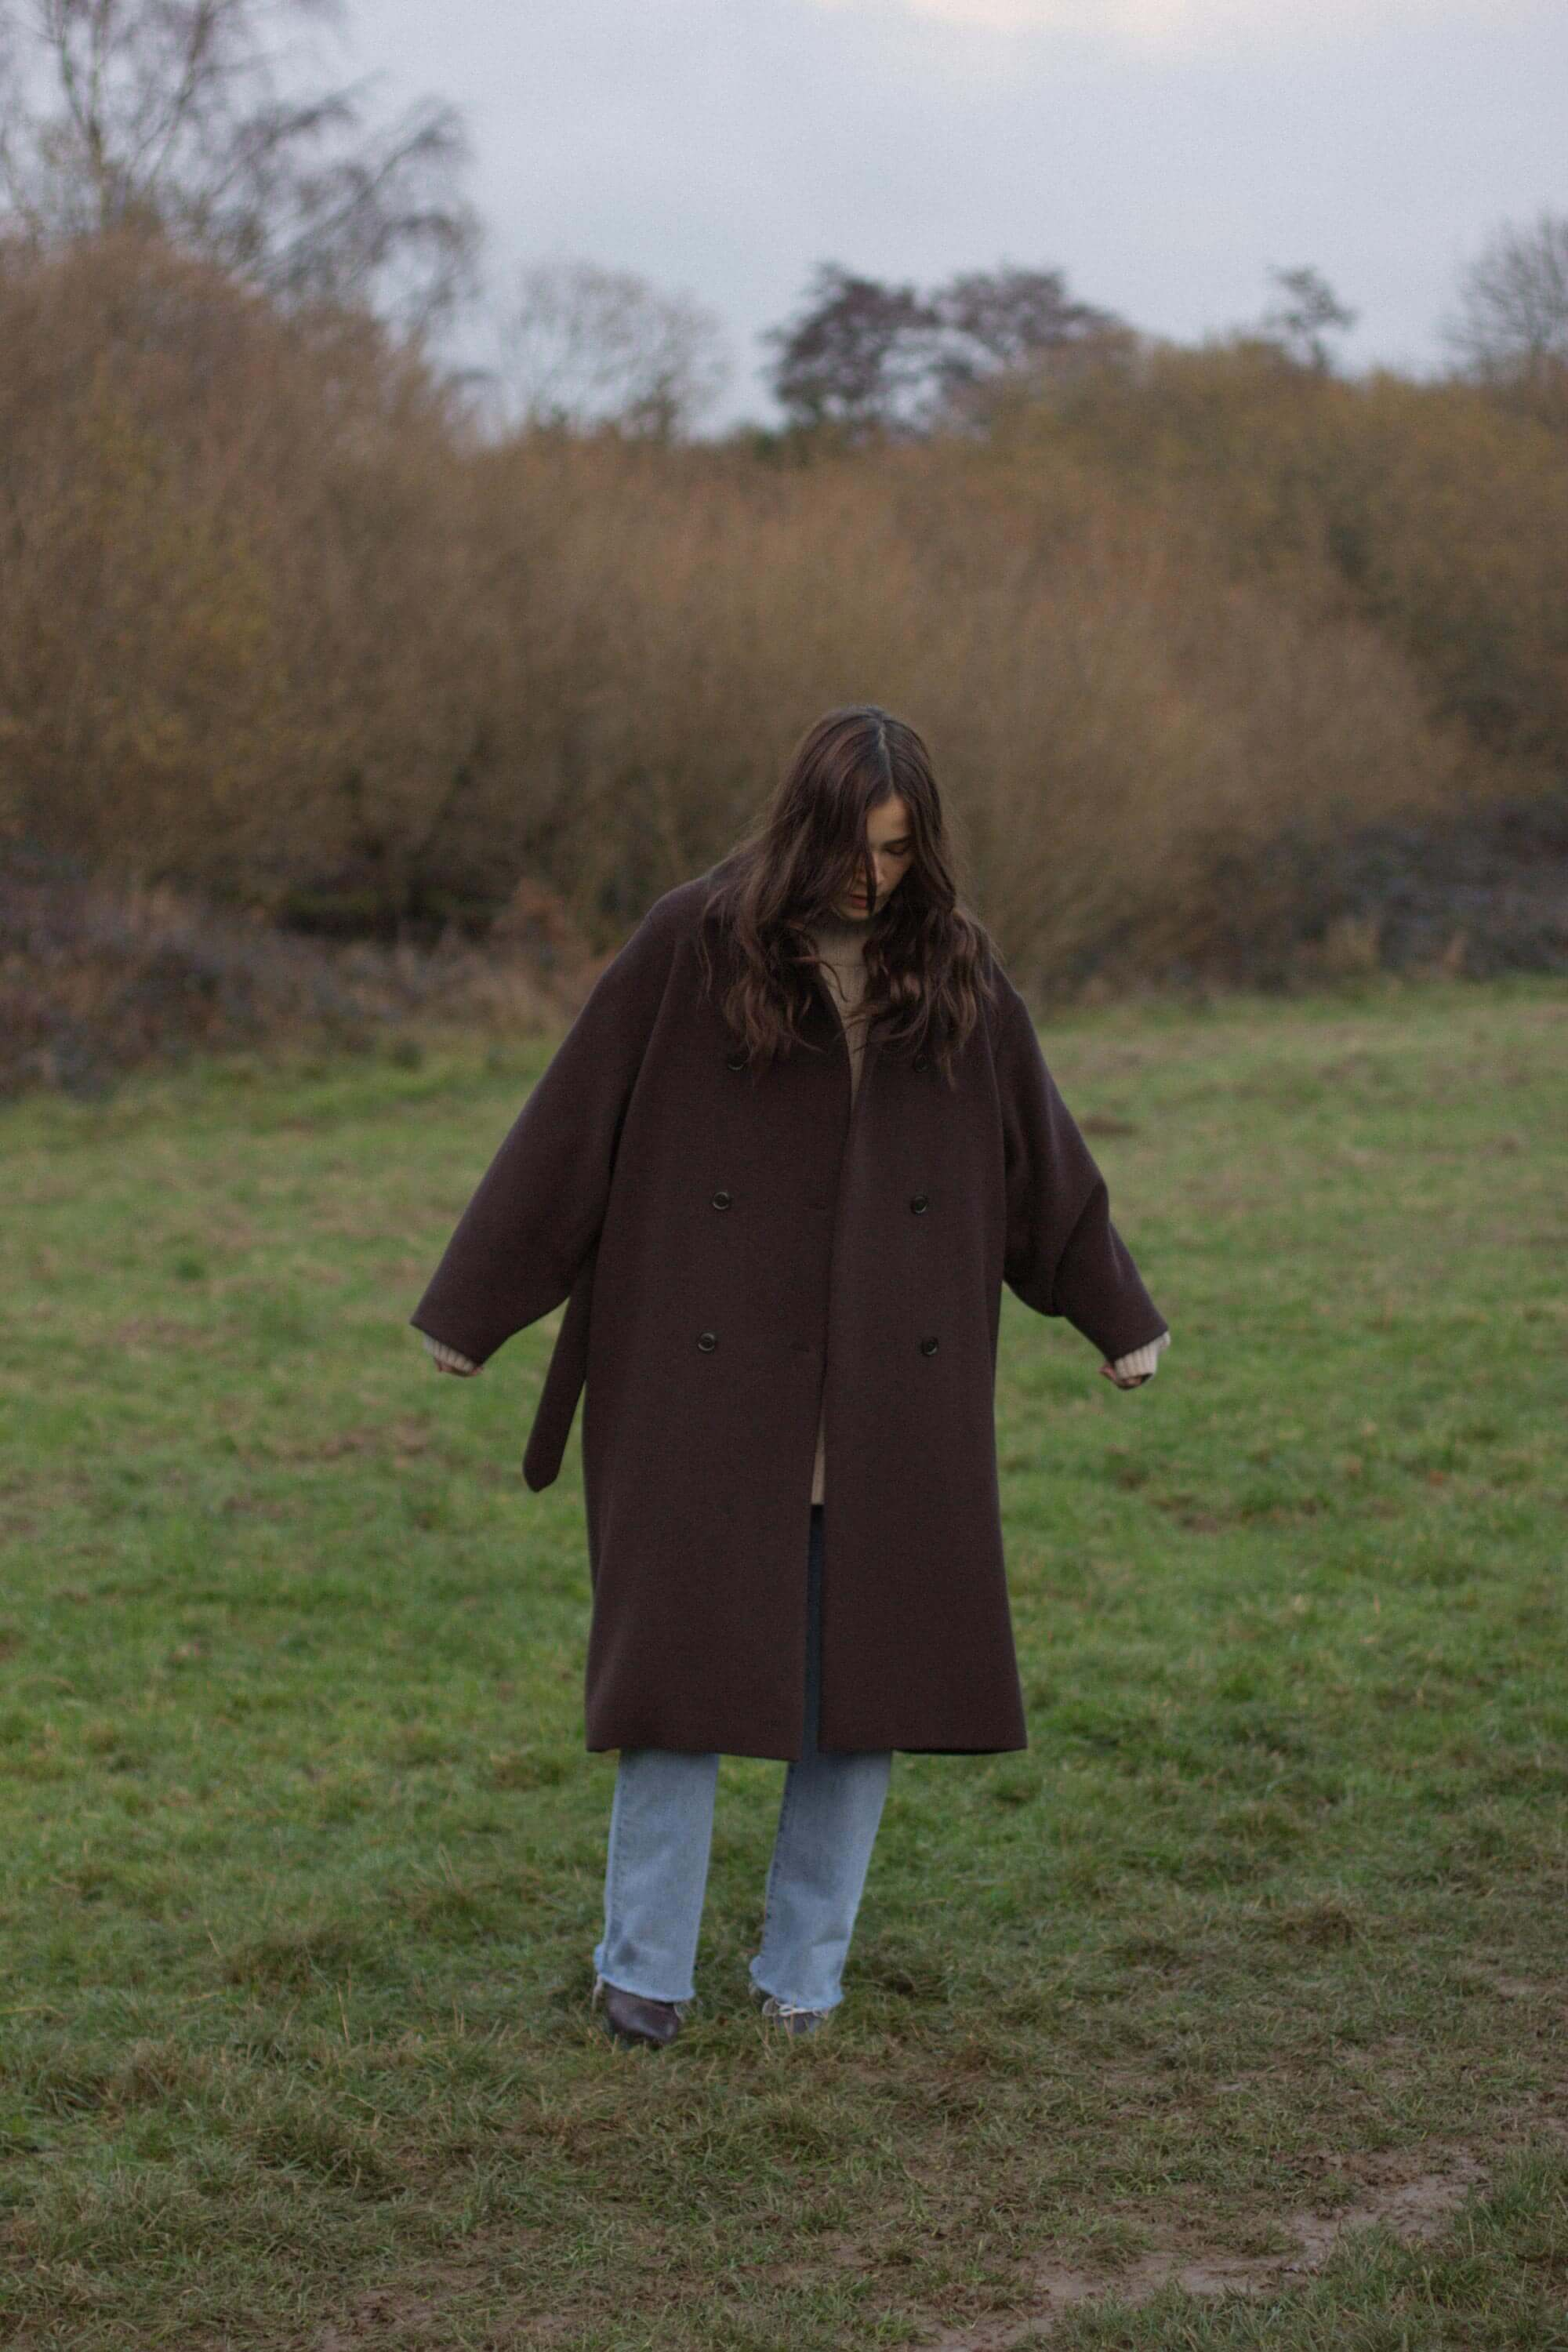 lena-herrmann-brown-coat-08